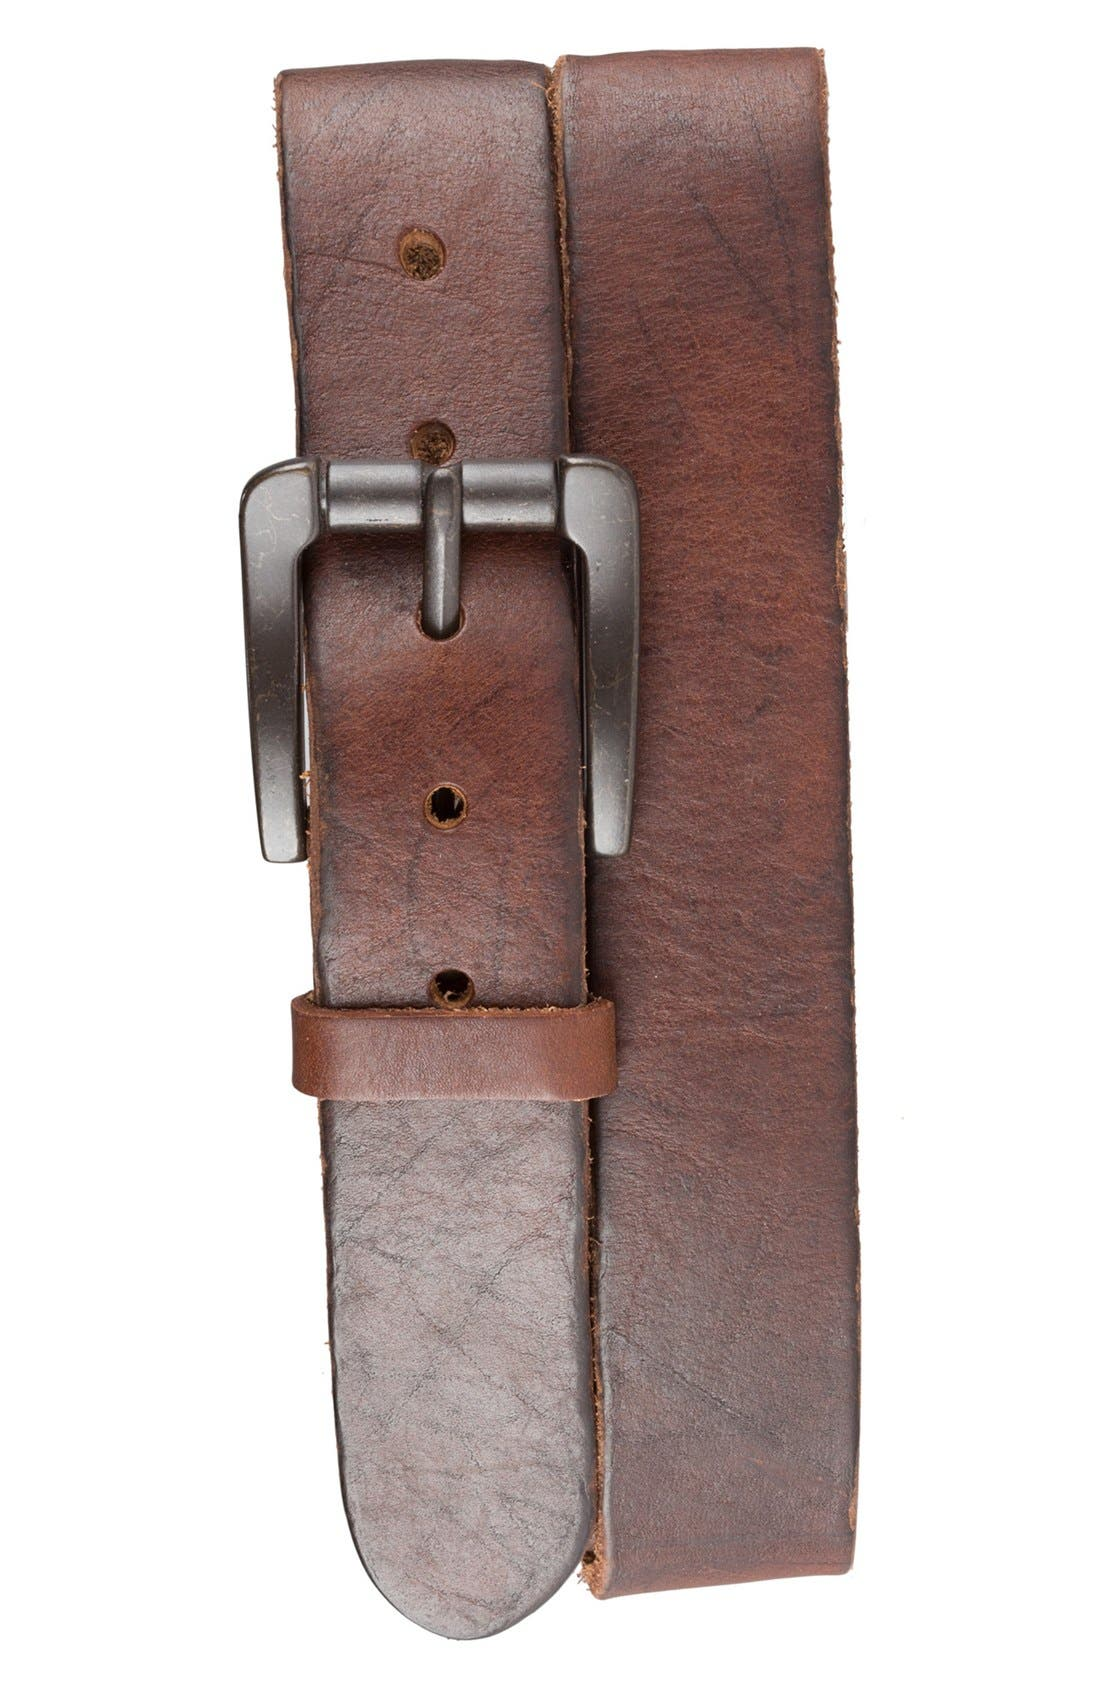 Alternate Image 1 Selected - Bill Adler 1981 Vintage Leather Belt